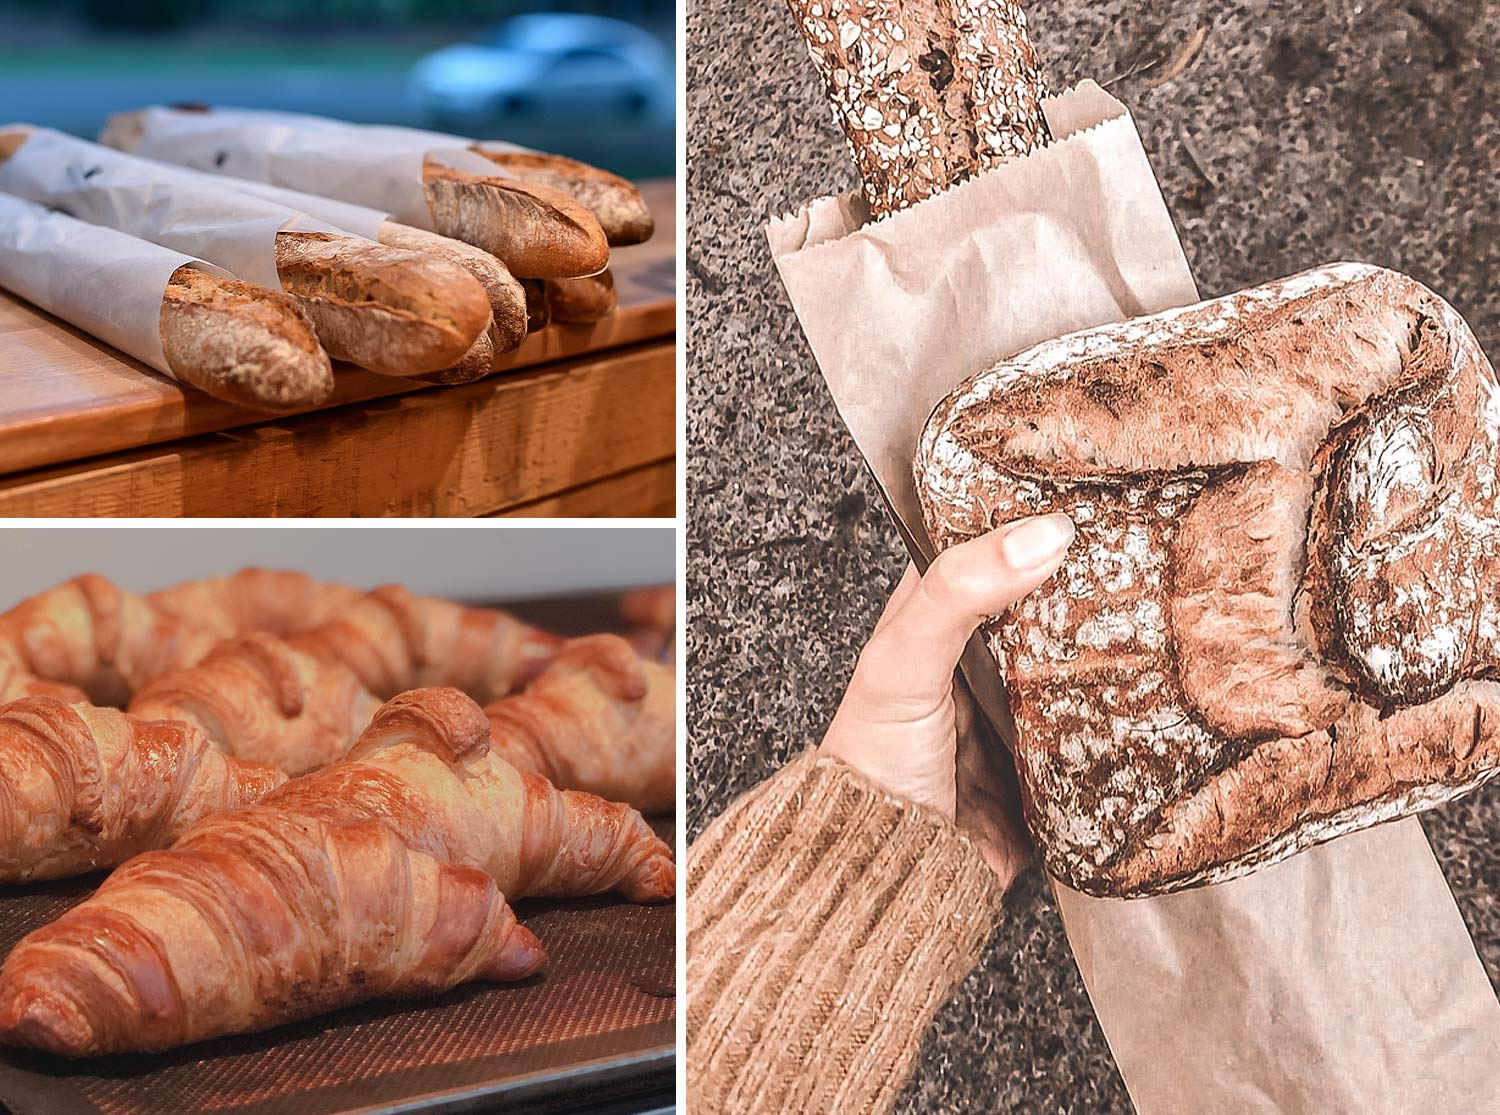 Delicious breads available in Northern Beaches Cafe